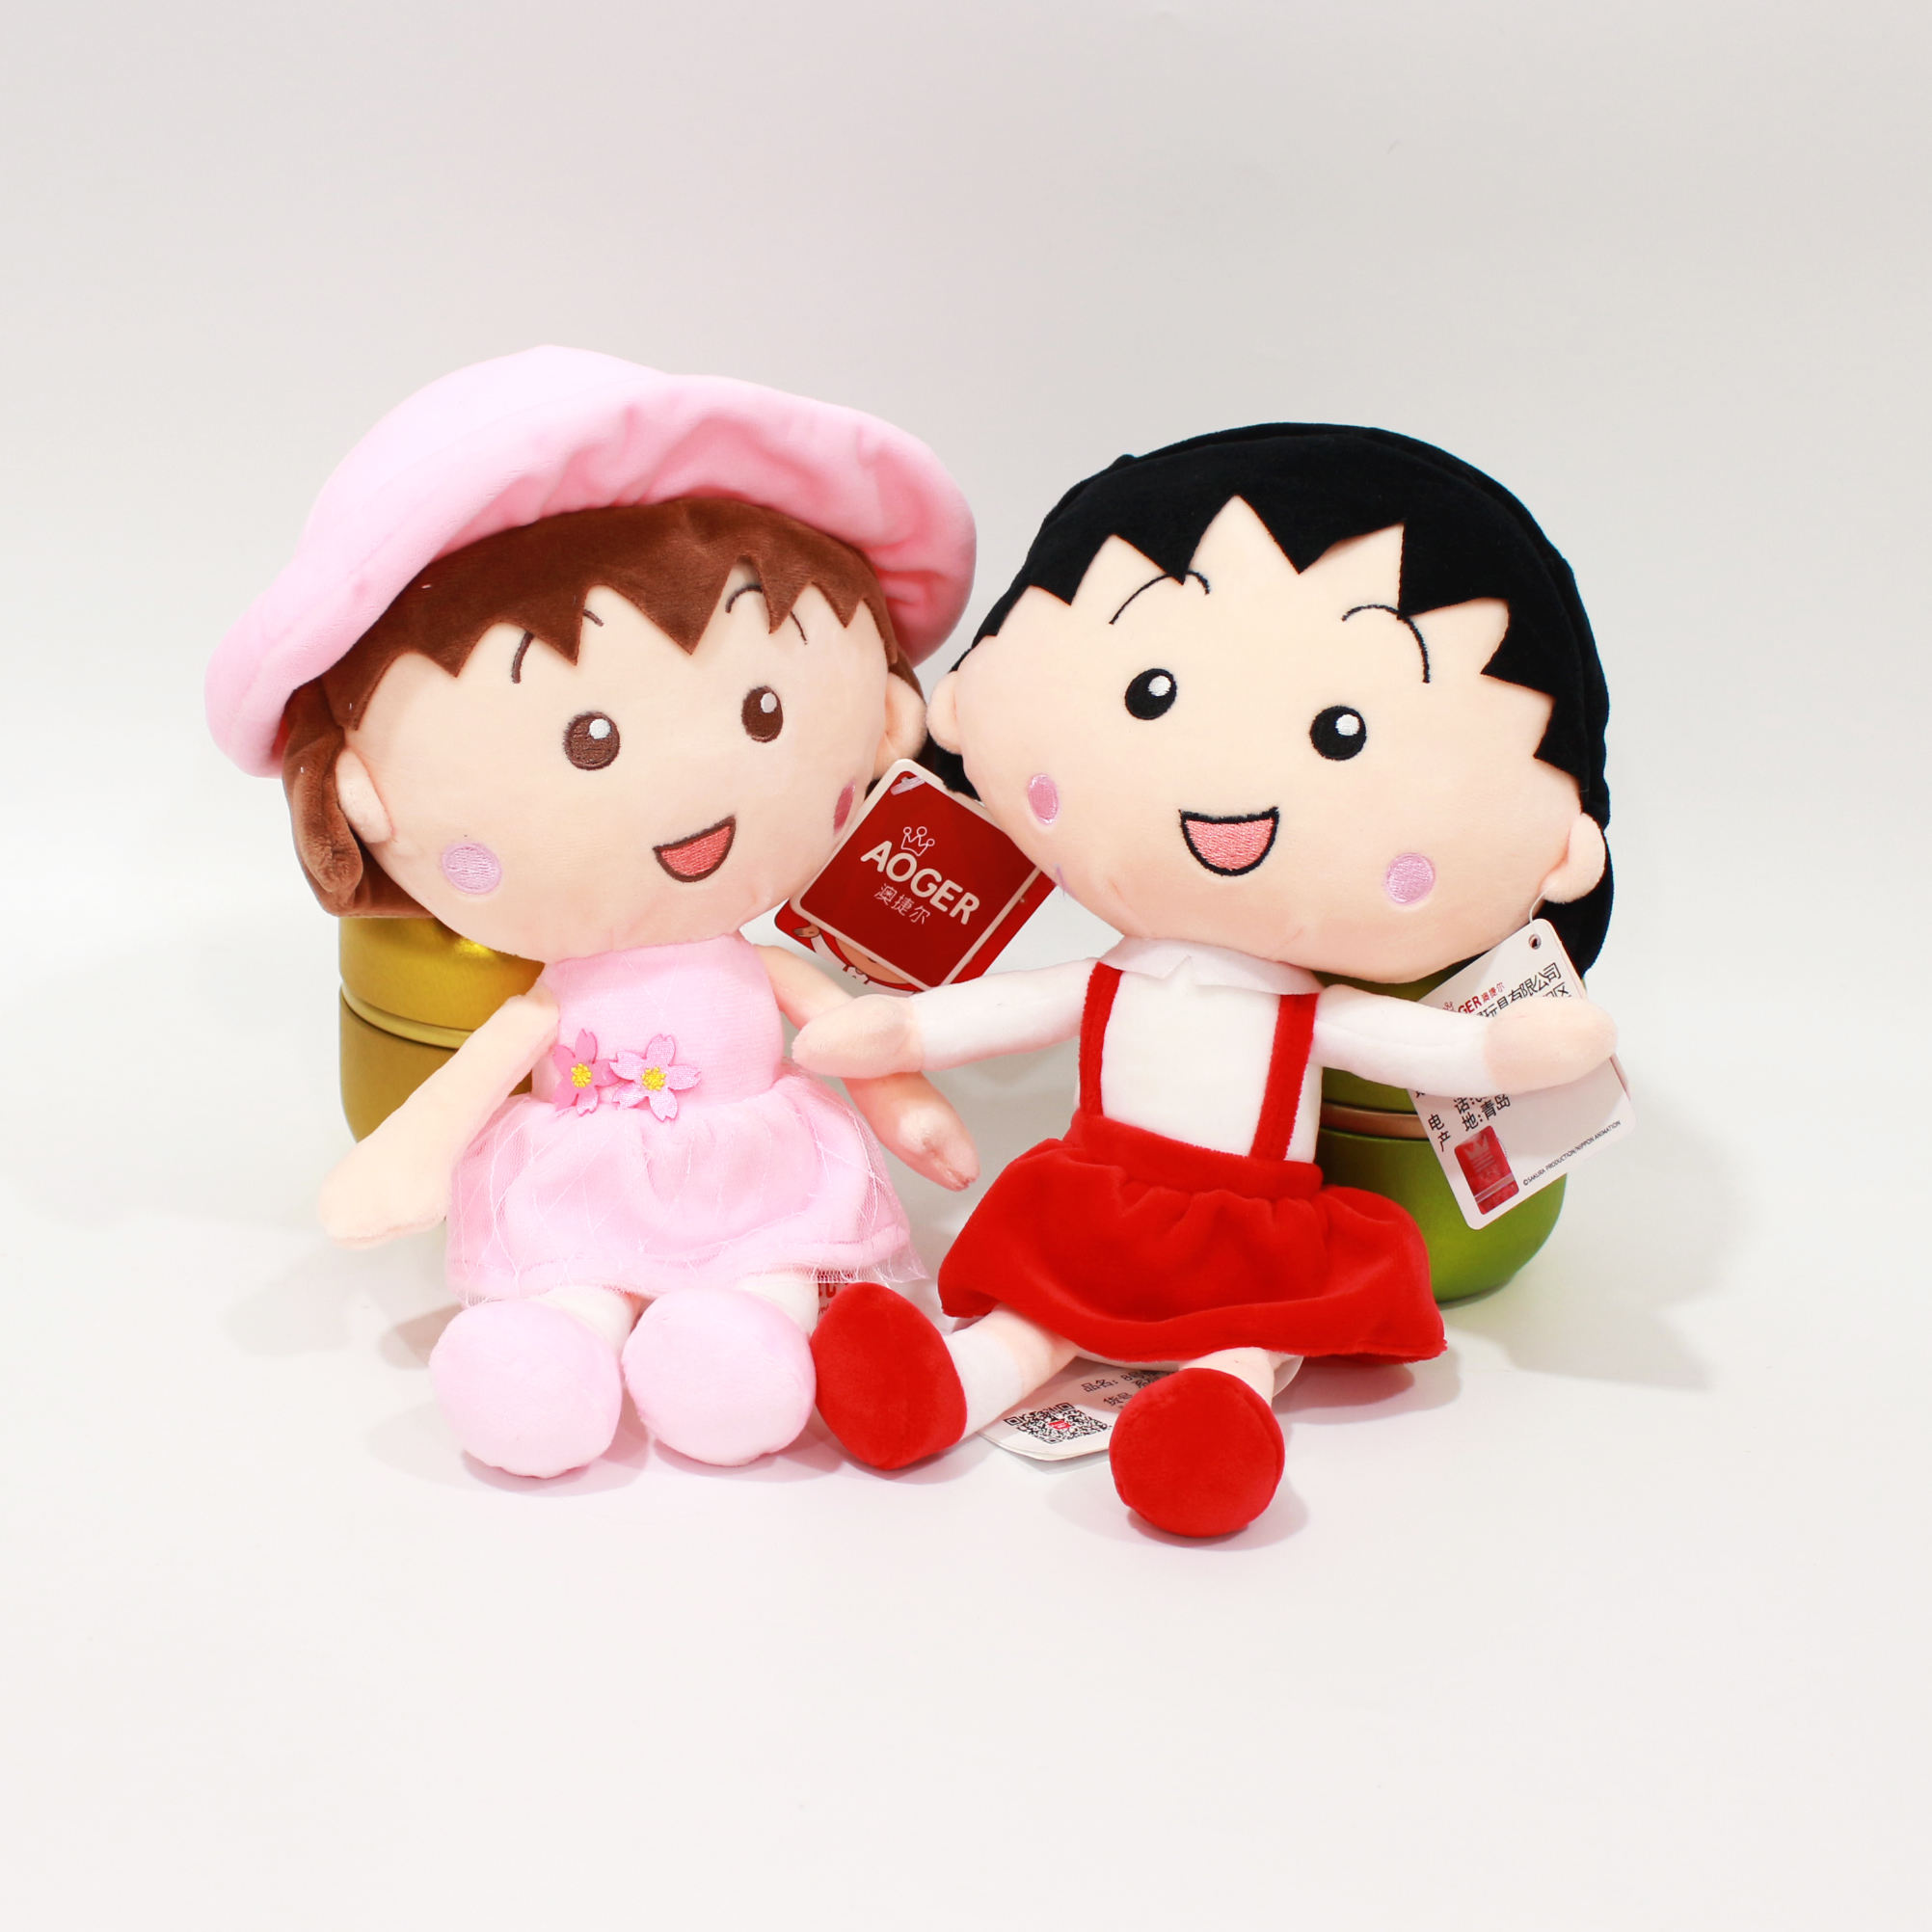 High quality soft plush red wall ball Zen plush toys Lovely